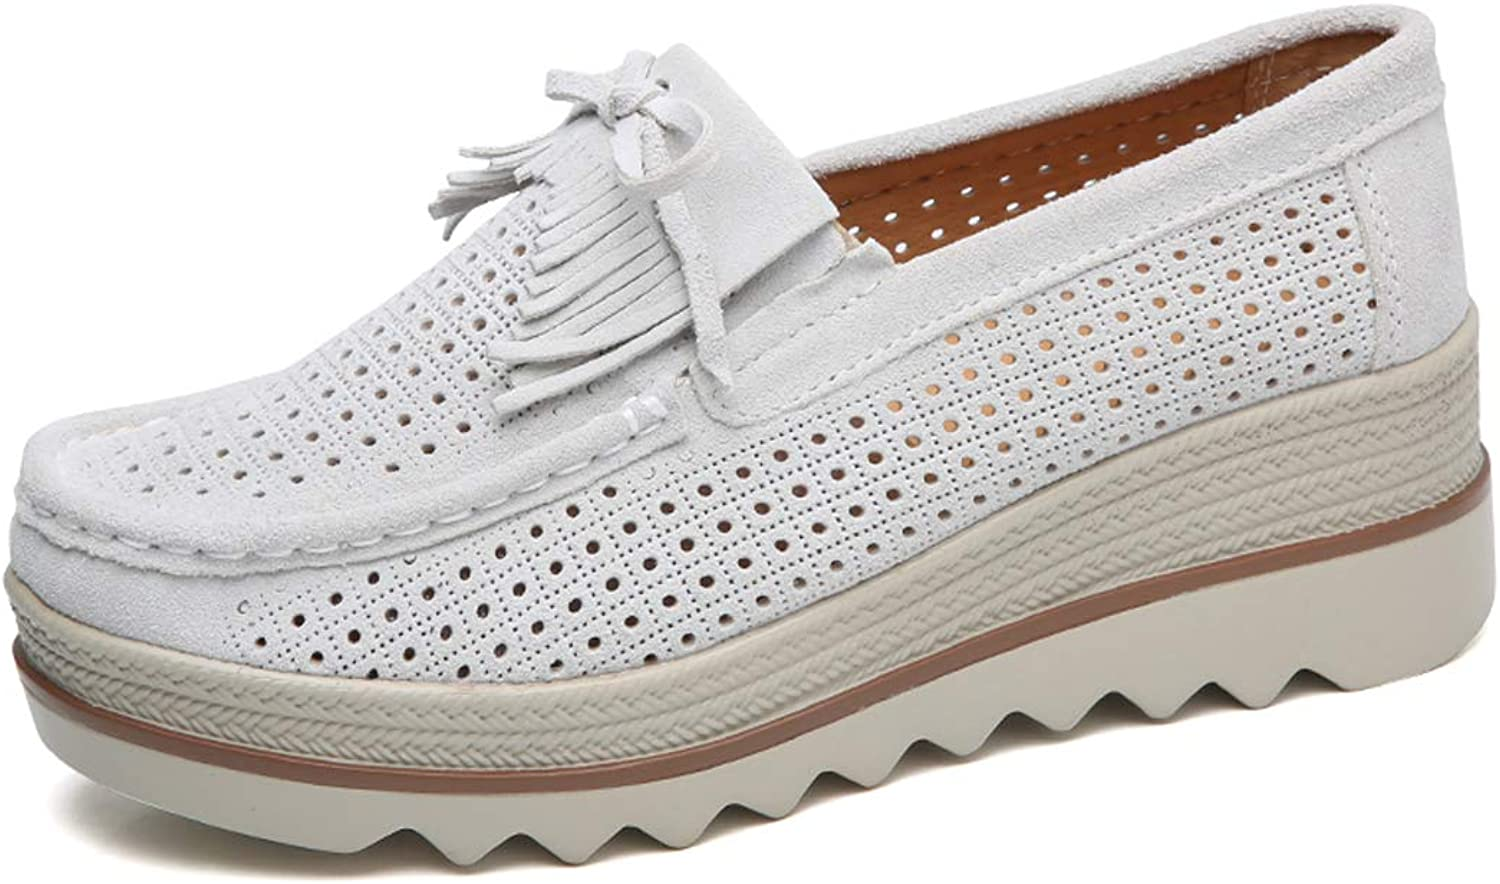 Ruiatoo Women Platform Slip On Loafers Comfort Genuine Suede with Tassel Hollow Out Low Top Moccasins Off-White 40